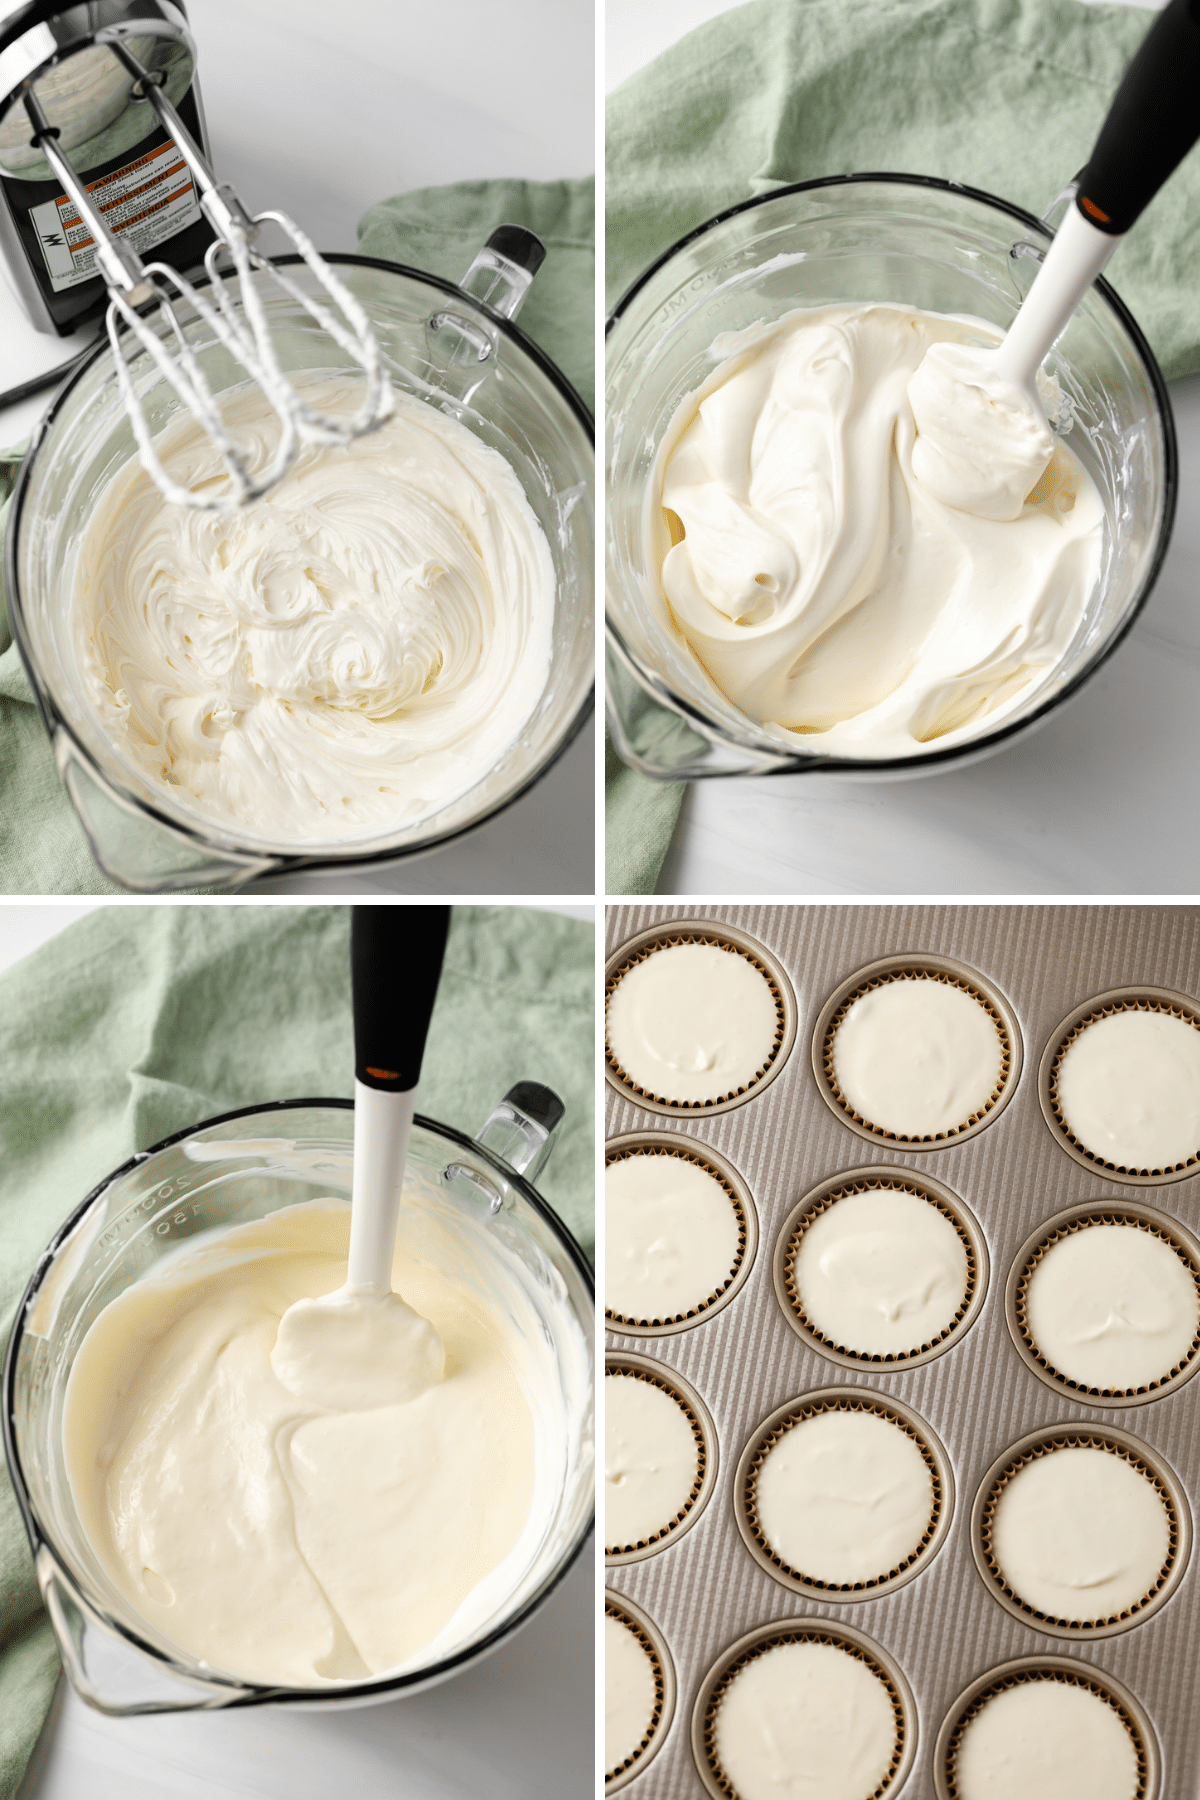 process shots showing cheesecake filling being mixed in glass bowl then portioned into muffin pan liked with paper liners